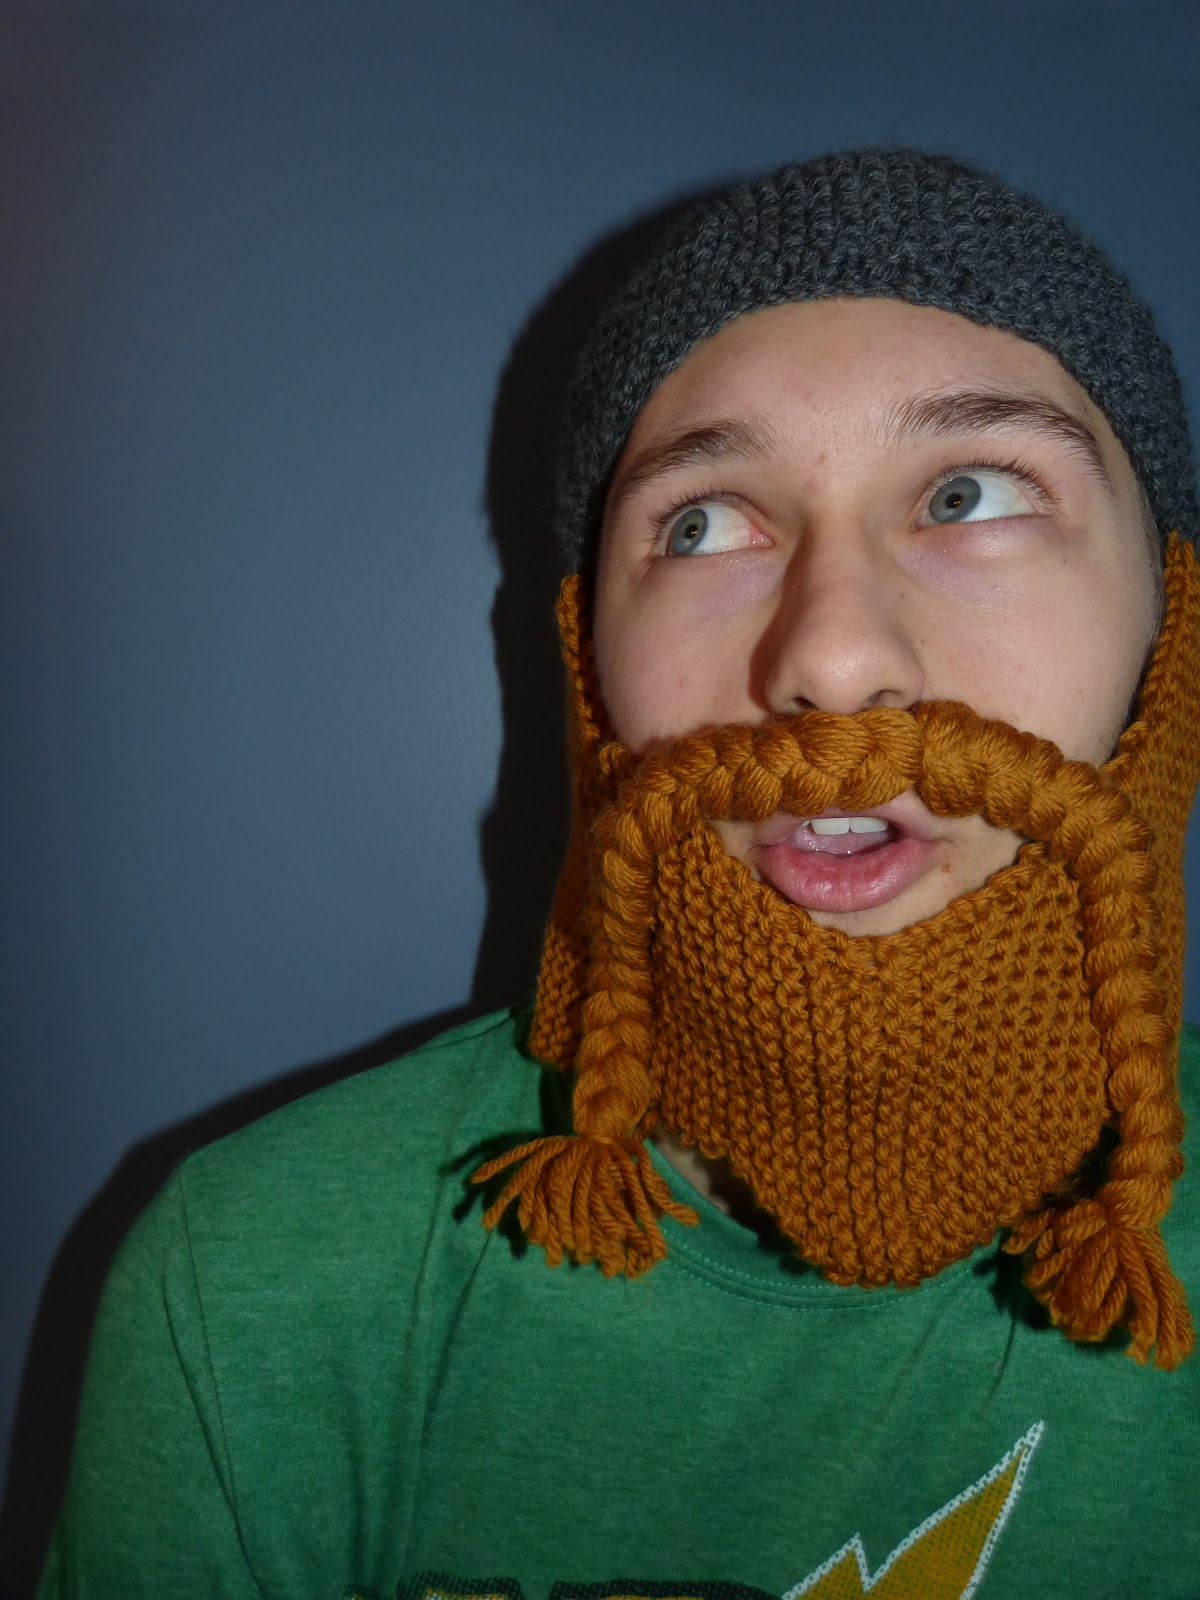 Crochet Dwarf Beard Hat Pattern : Fancy That: December 2011